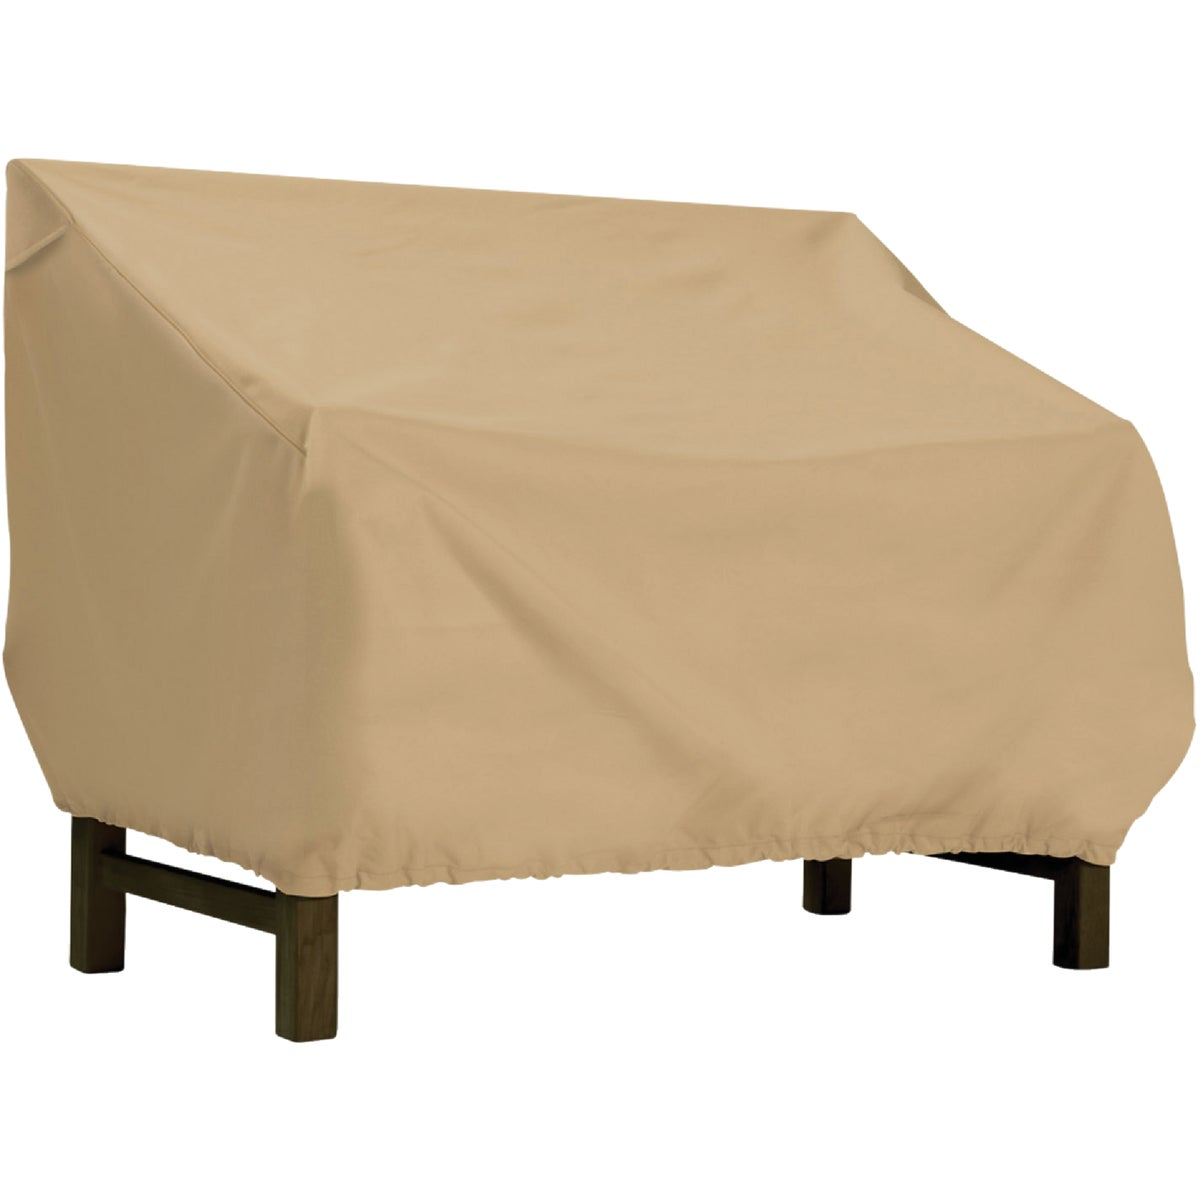 3-SEAT SOFA COVER - 58282 by Classic Accessories